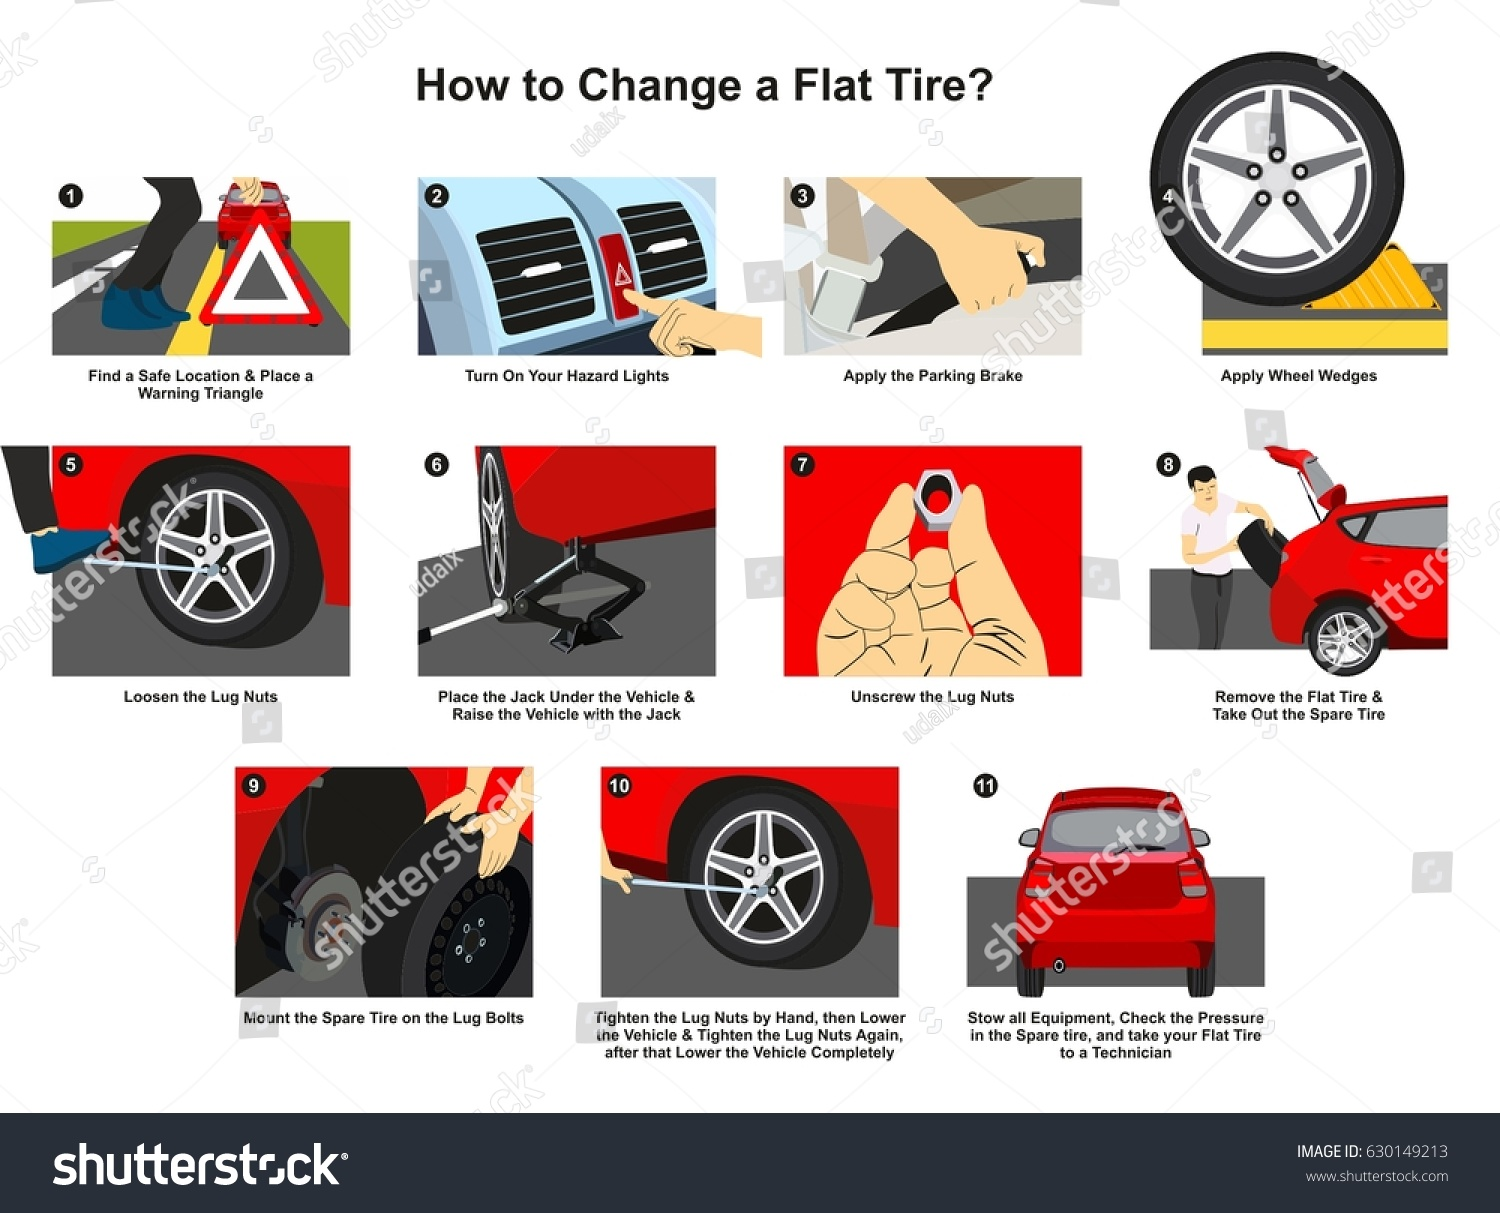 hight resolution of how to change a flat tire infographic diagram with detailed conceptual drawing images step by step